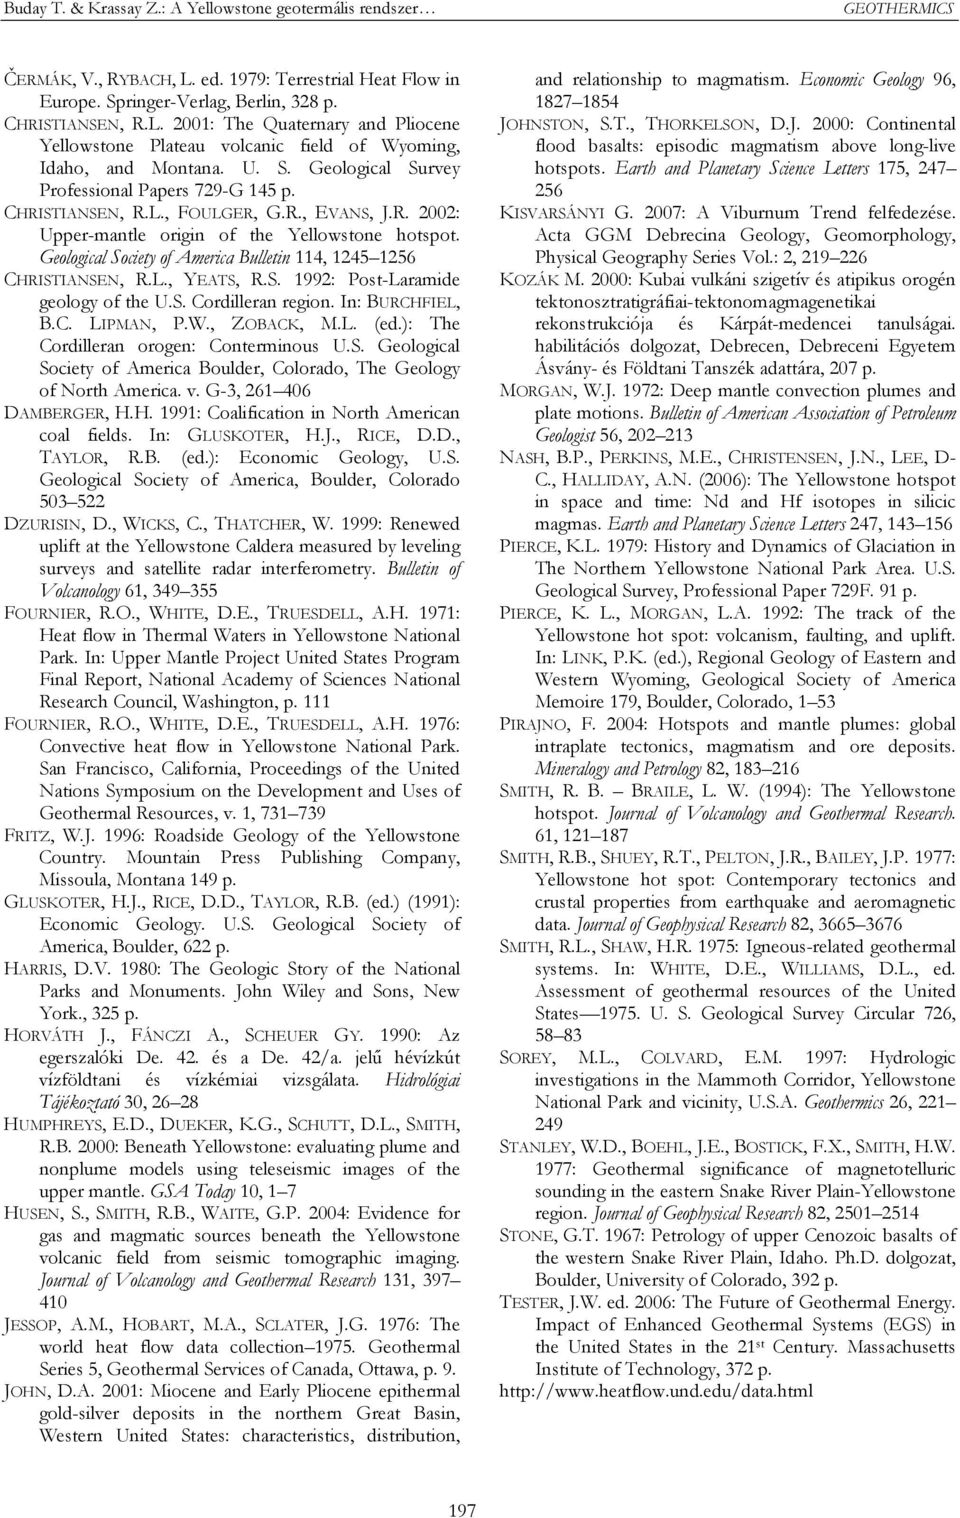 Geological Society of America Bulletin 114, 1245 1256 CHRISTIANSEN, R.L., YEATS, R.S. 1992: Post-Laramide geology of the U.S. Cordilleran region. In: BURCHFIEL, B.C. LIPMAN, P.W., ZOBACK, M.L. (ed.